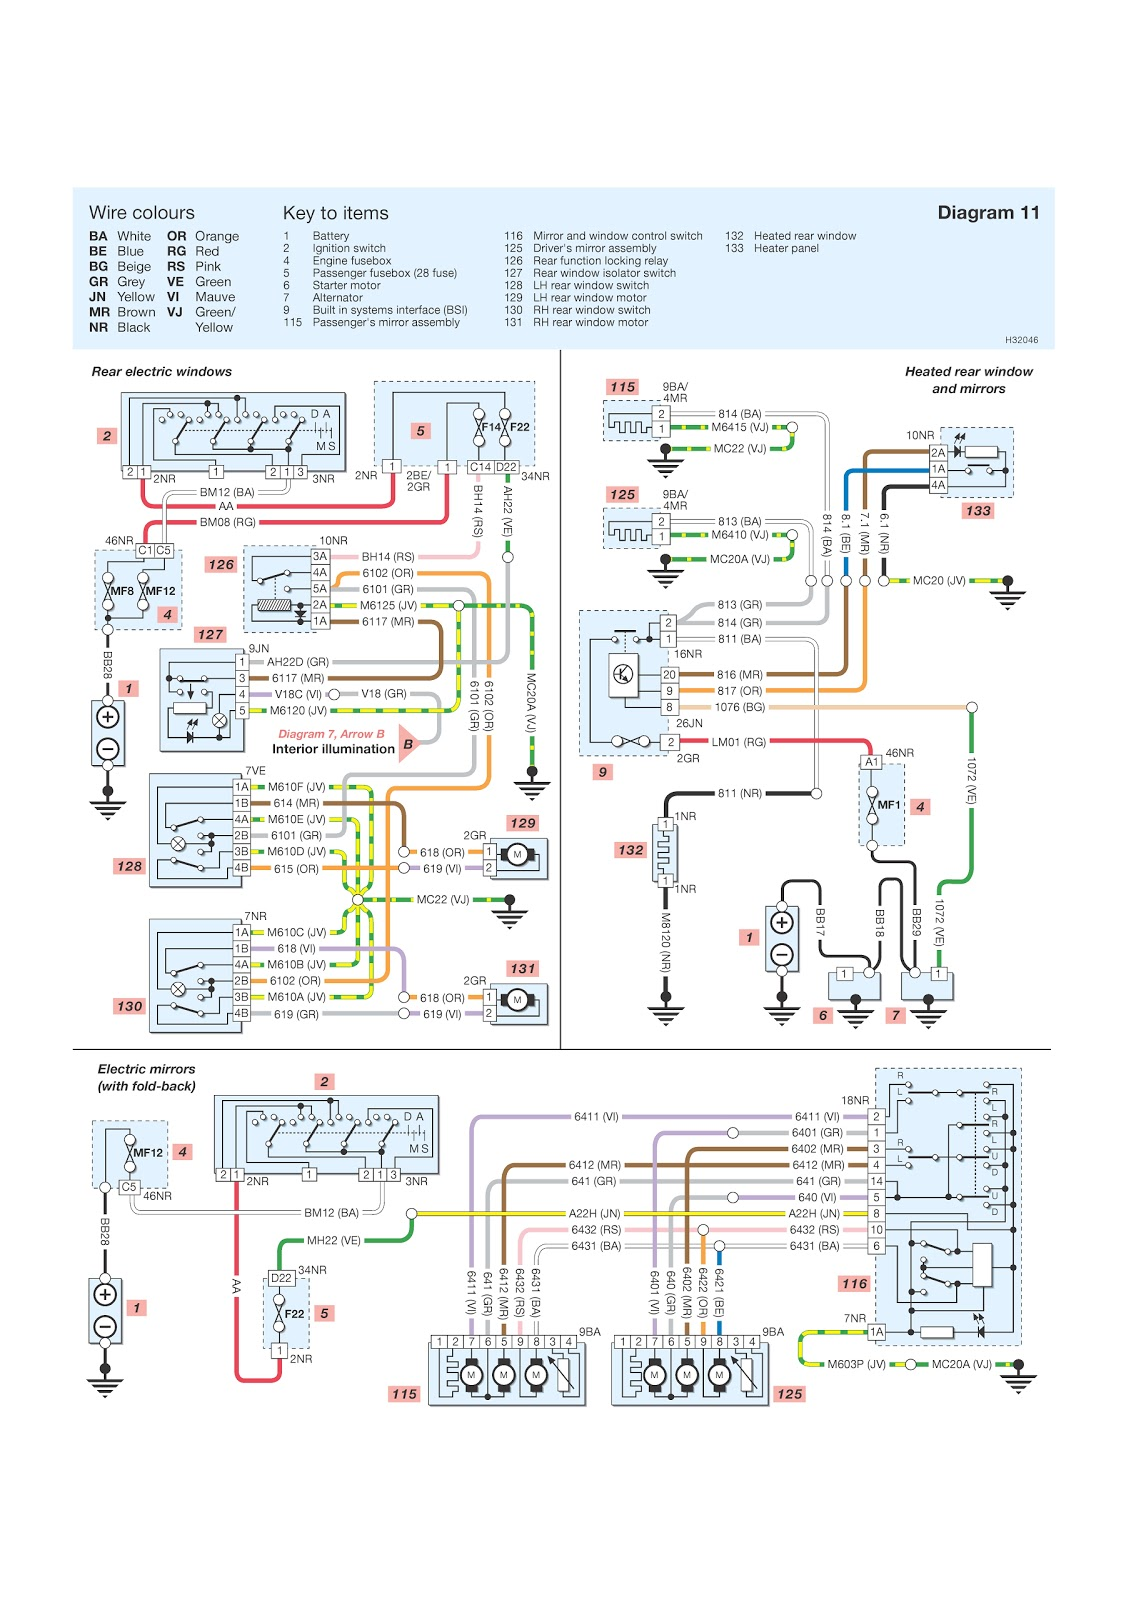 schematic wiring diagrams solutions color coding in order to get successful works and for the details [ 1131 x 1600 Pixel ]